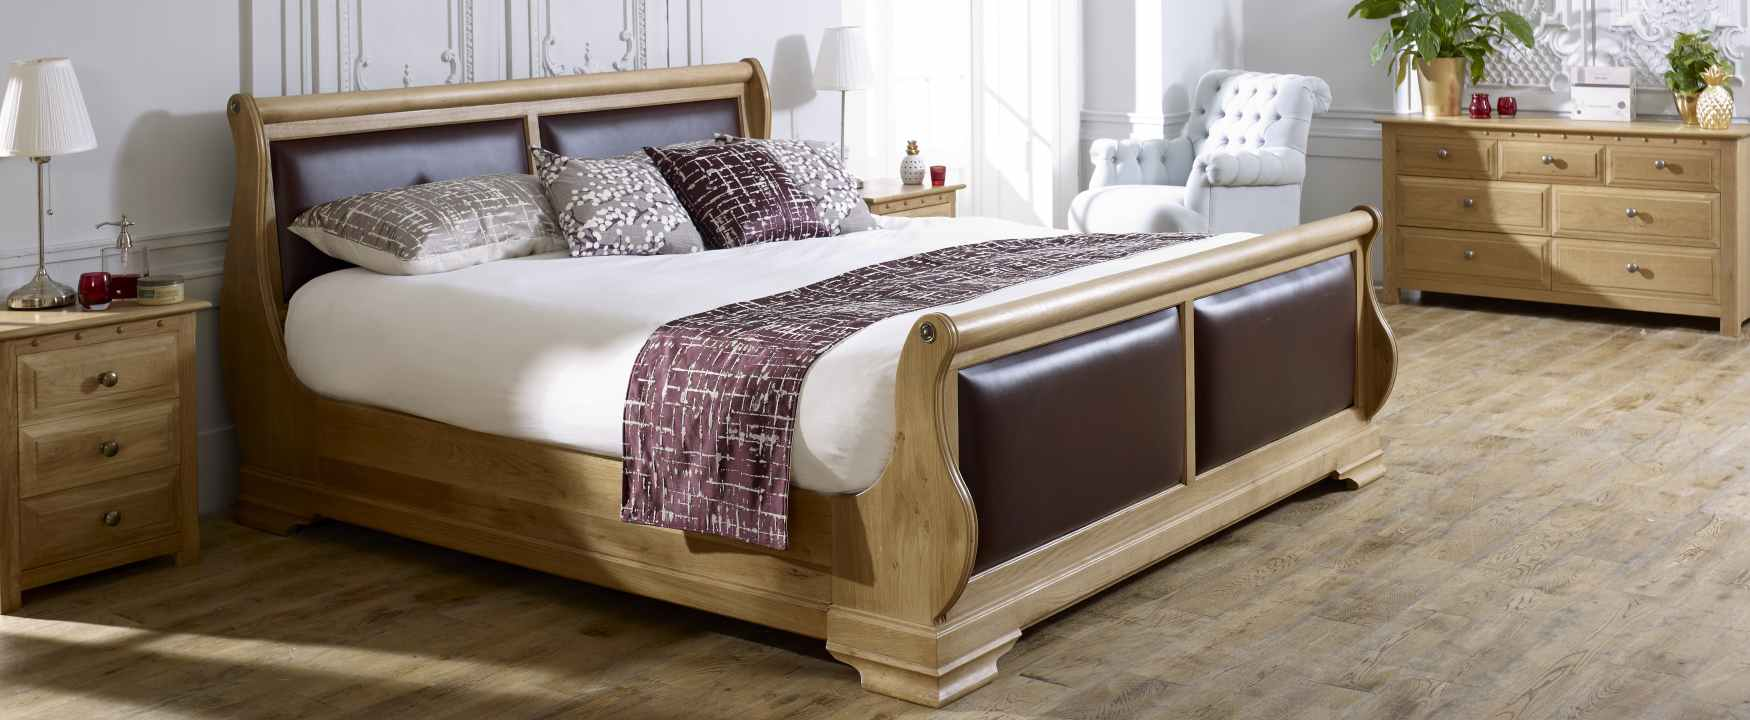 Dreams Beds Northampton Solid Wood Beds From Revival Beds Handmade Beds